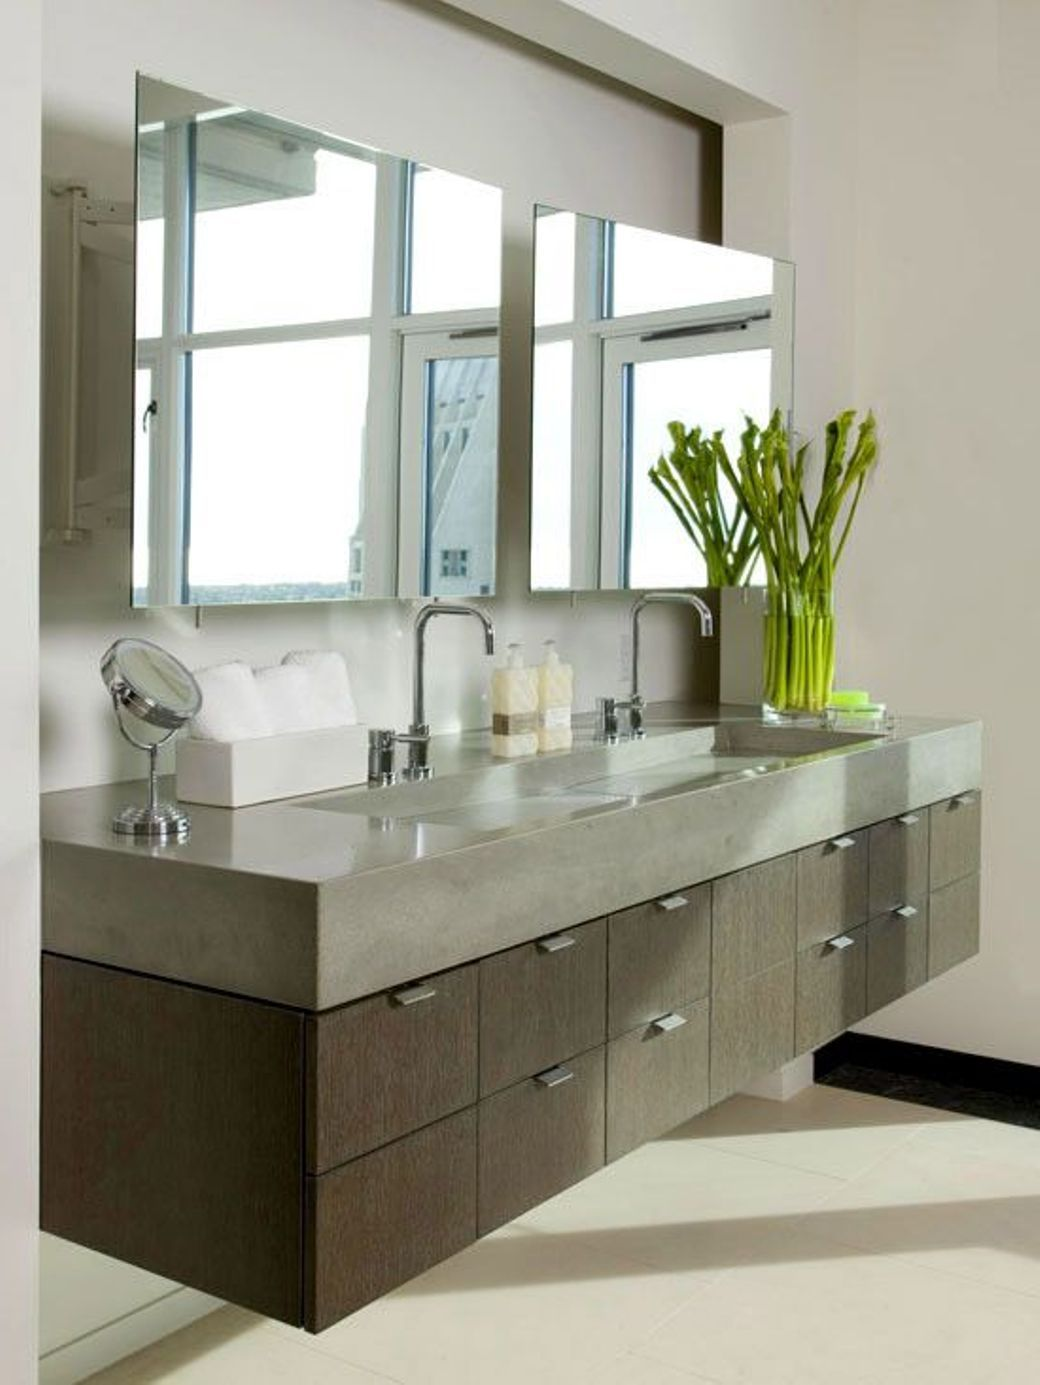 Bathroom the modern bathroom vanity floating modern bathroom vanity with poured concrete countertop and integrated trough sink and doubl